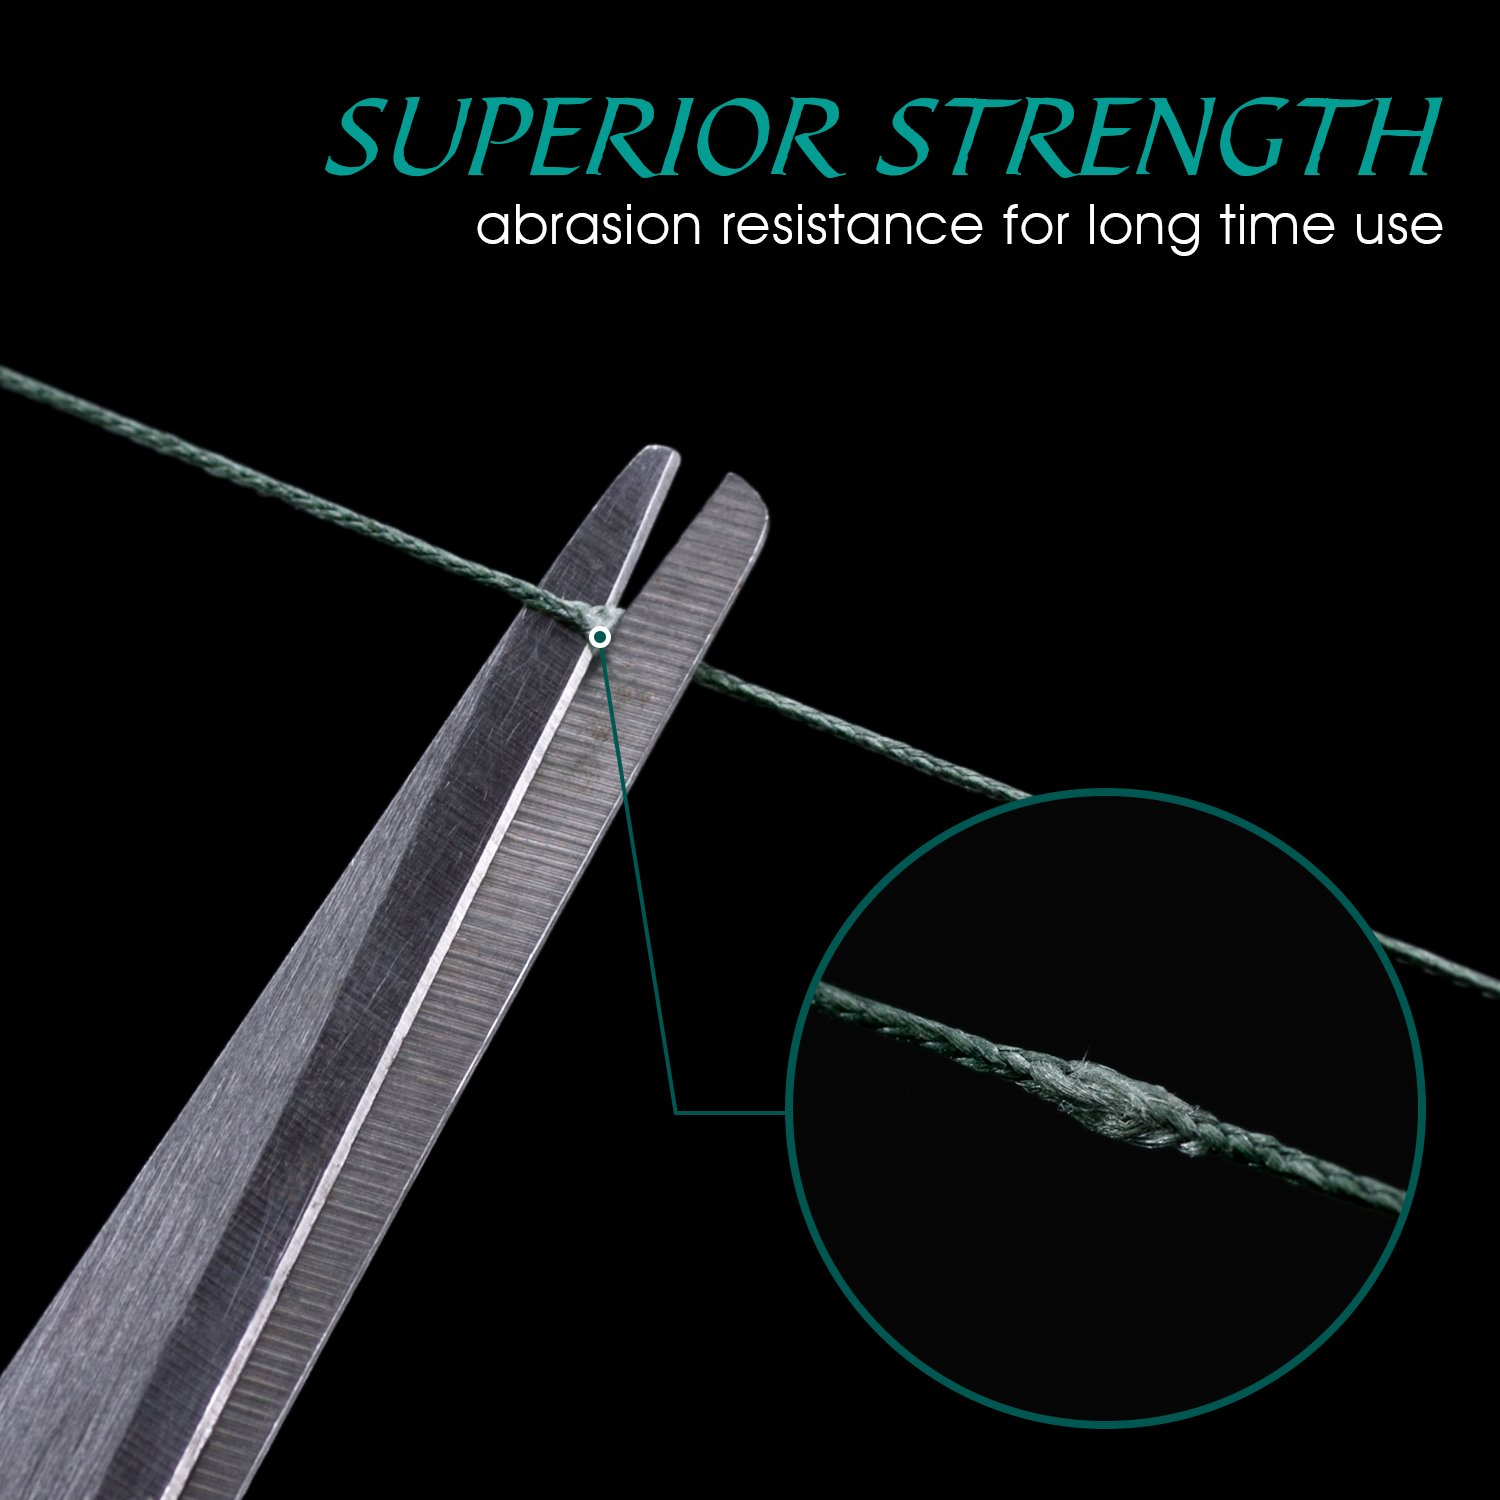 Braided Fishing Line, Super Strong Abrasion Resistant Fishing Line for Freshwater & Saltwater Fishing (1 Pack)